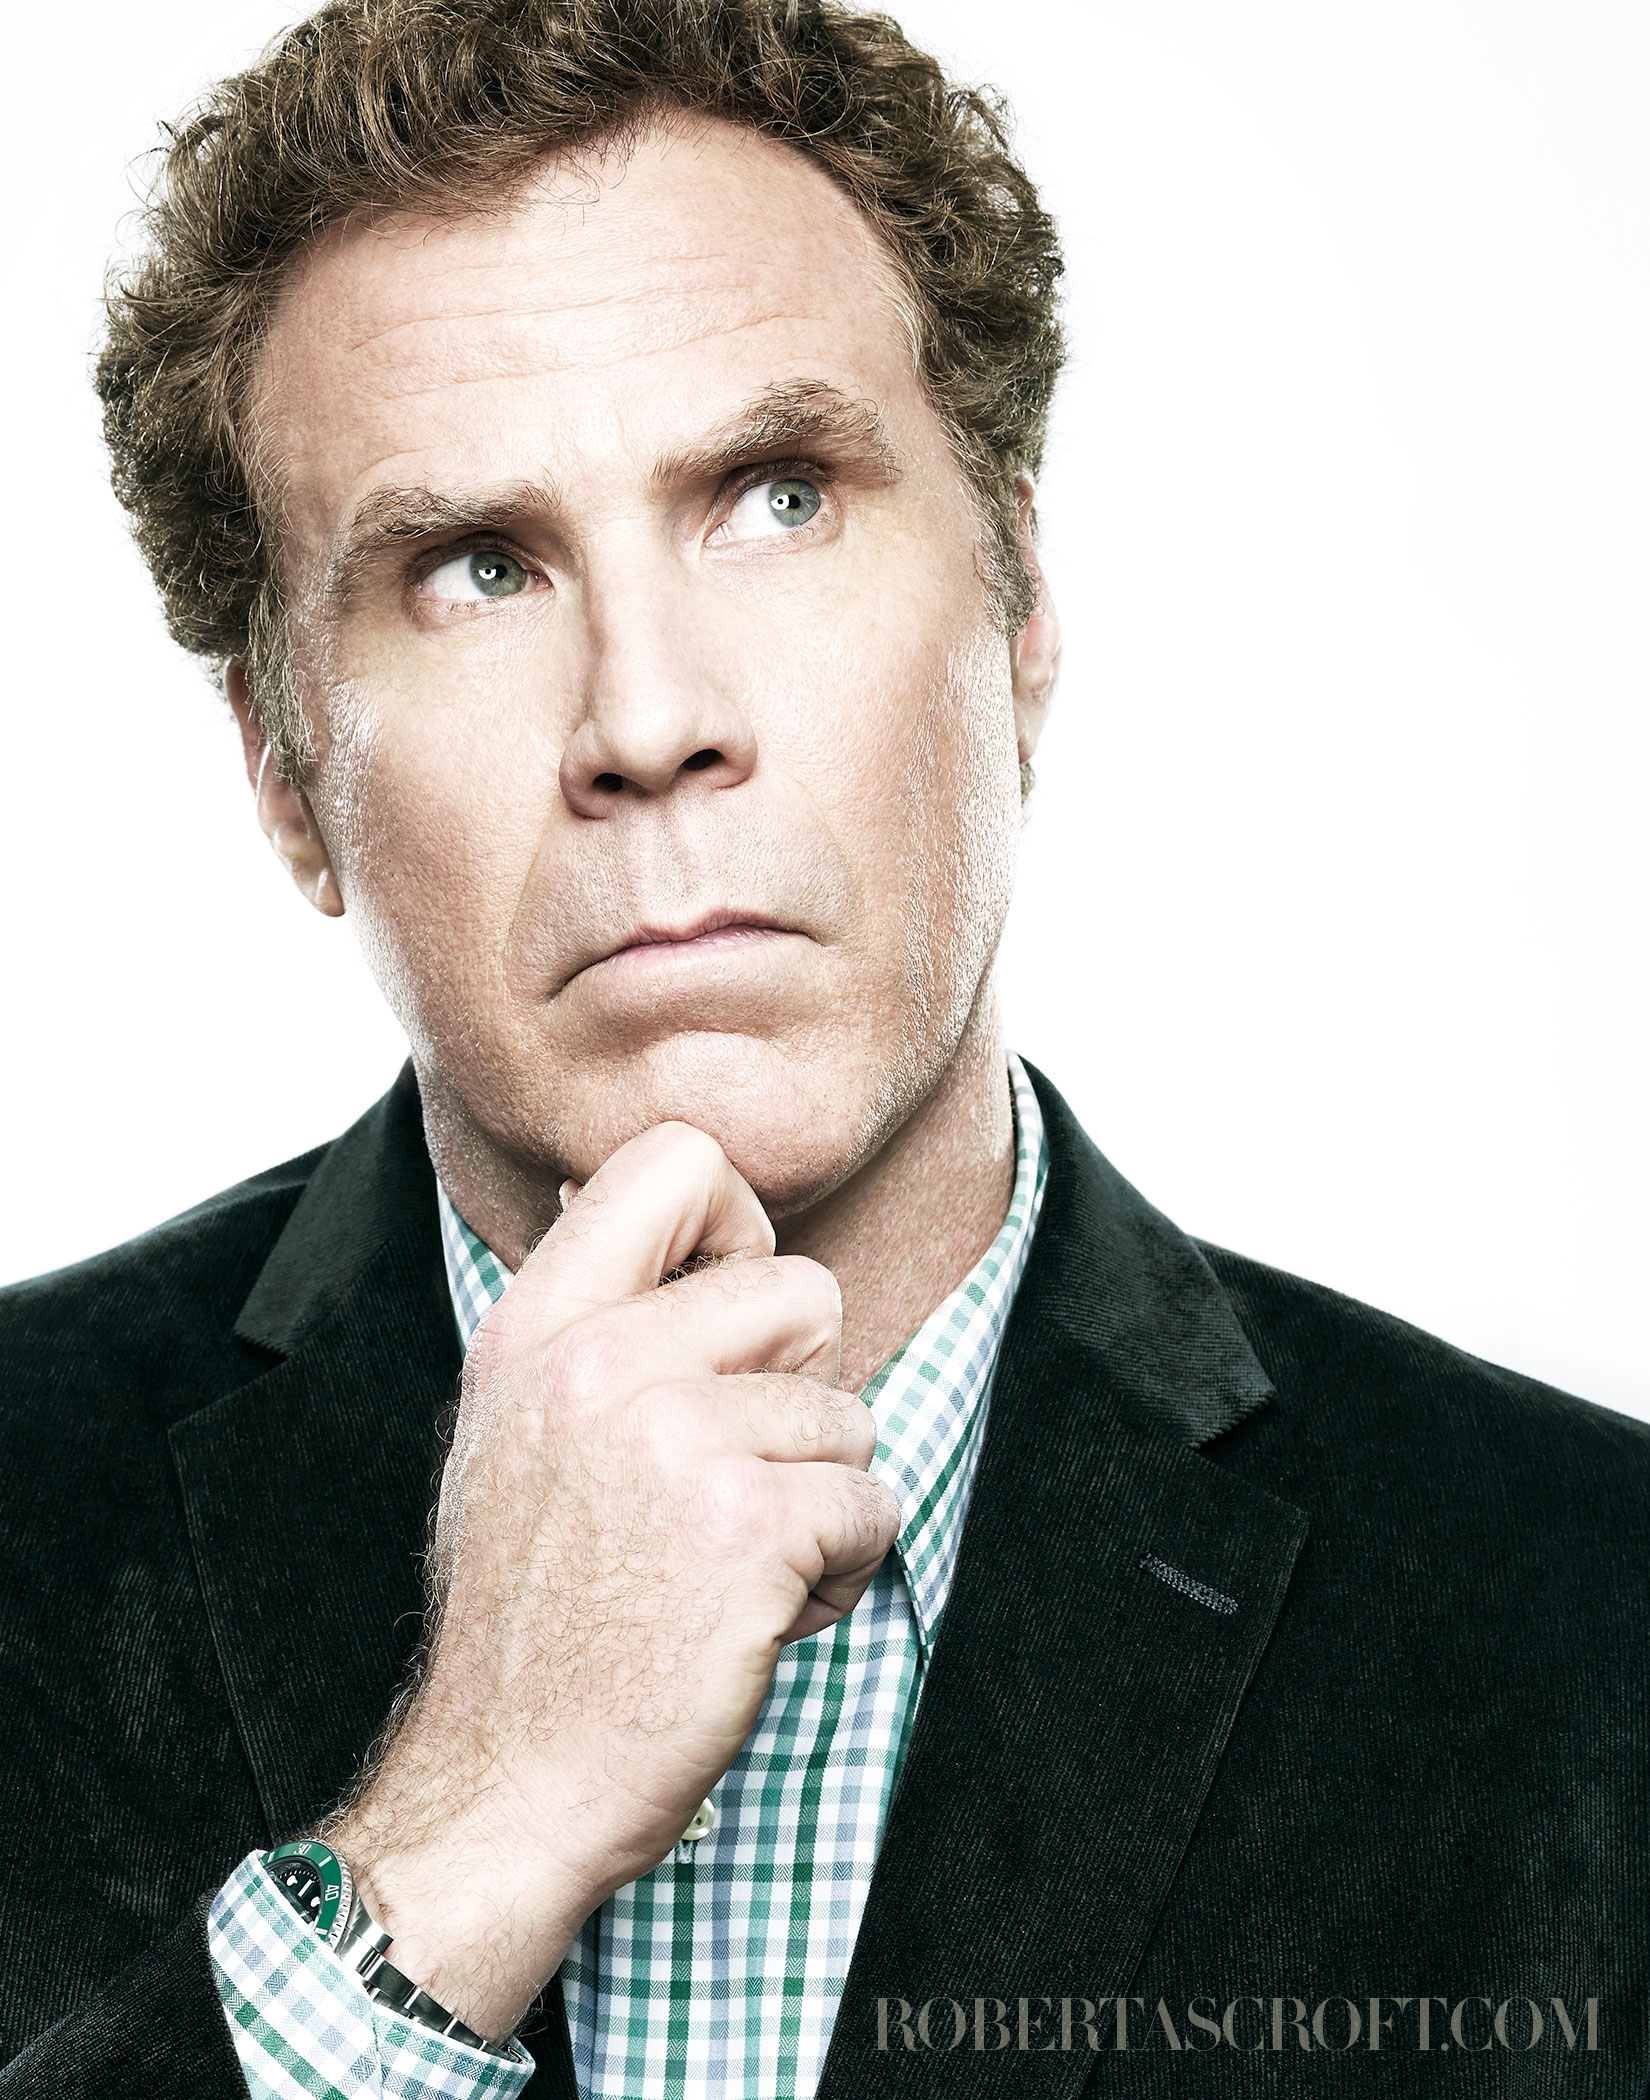 Will-Ferrell-by-Robert-Ascroft-01